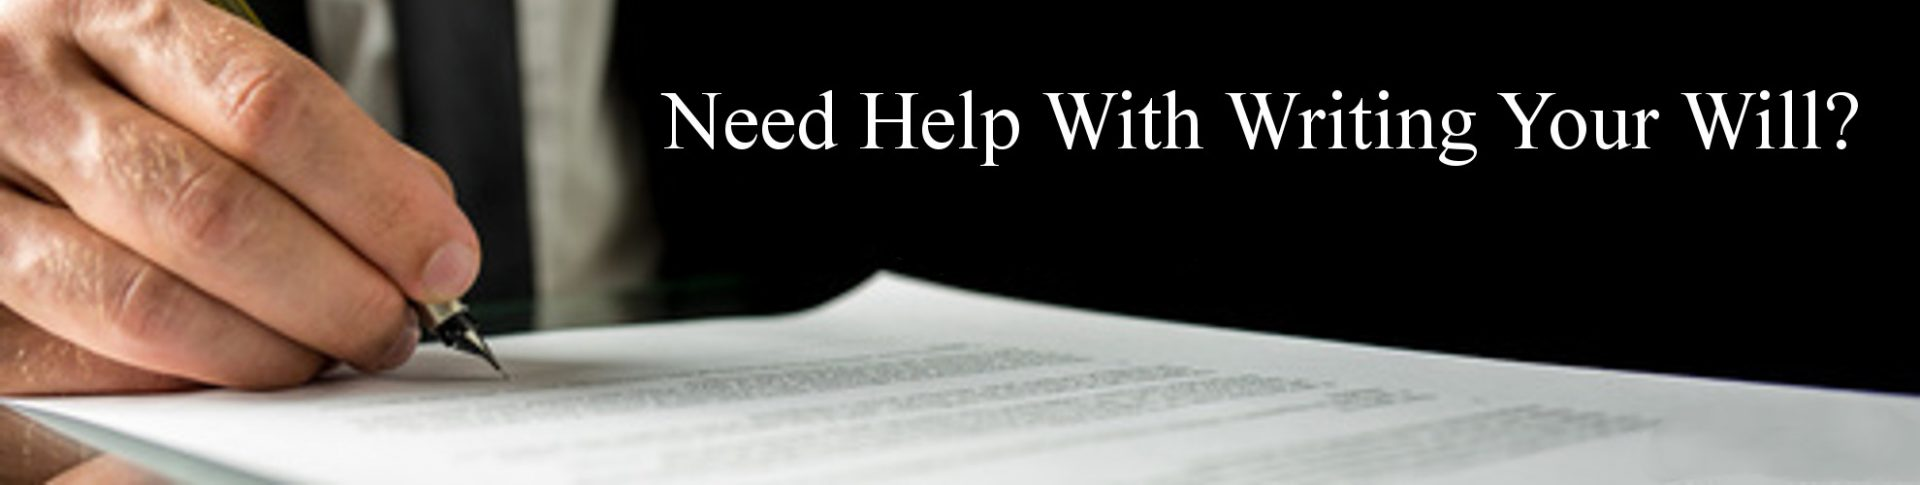 Need Help Writing Your Will?